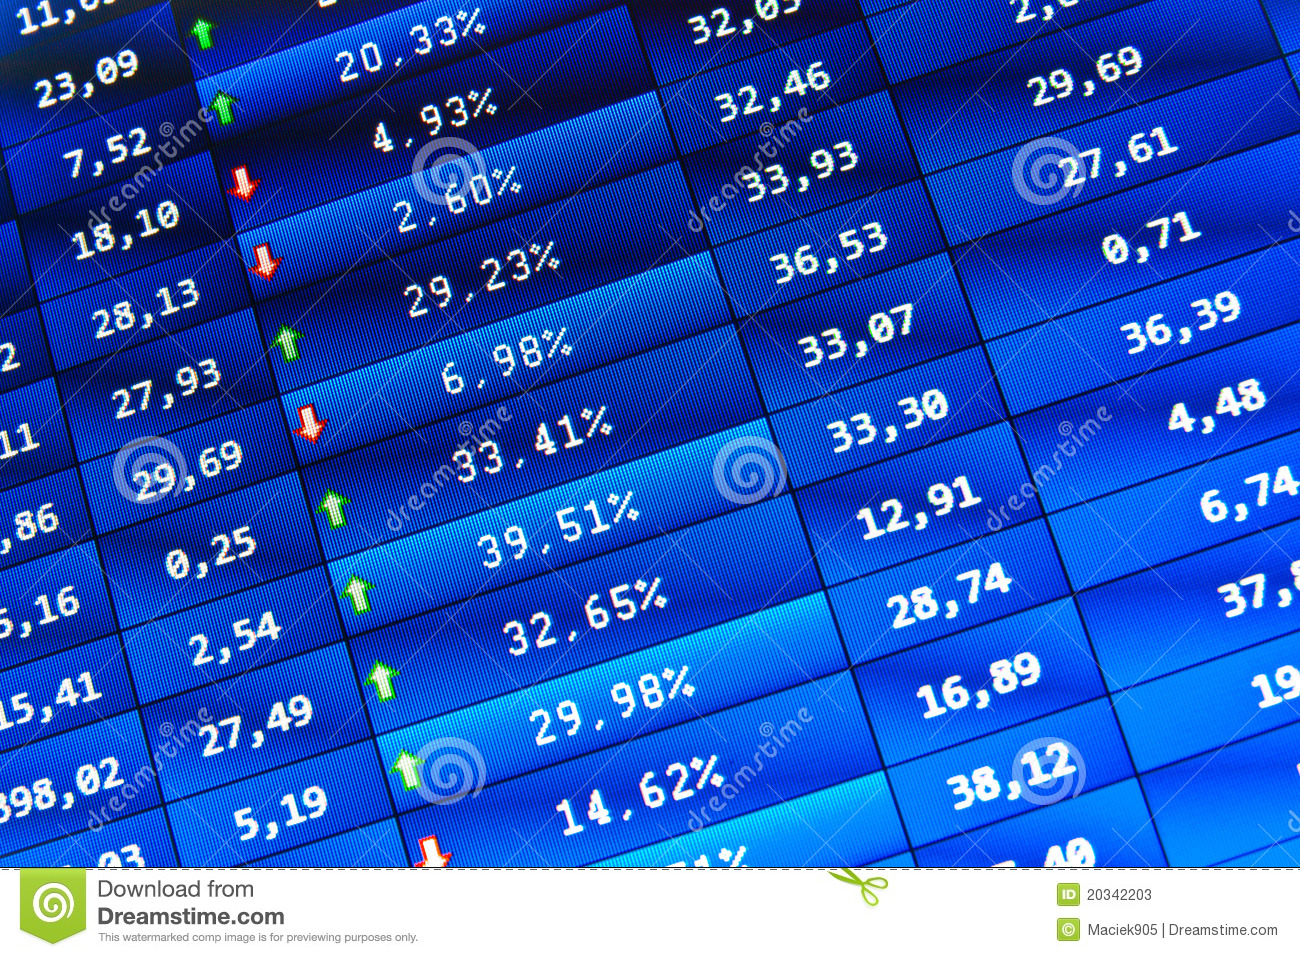 Real Time Stock Quote Stock Quotes At Real Time At The Stock Exchange Stock Image